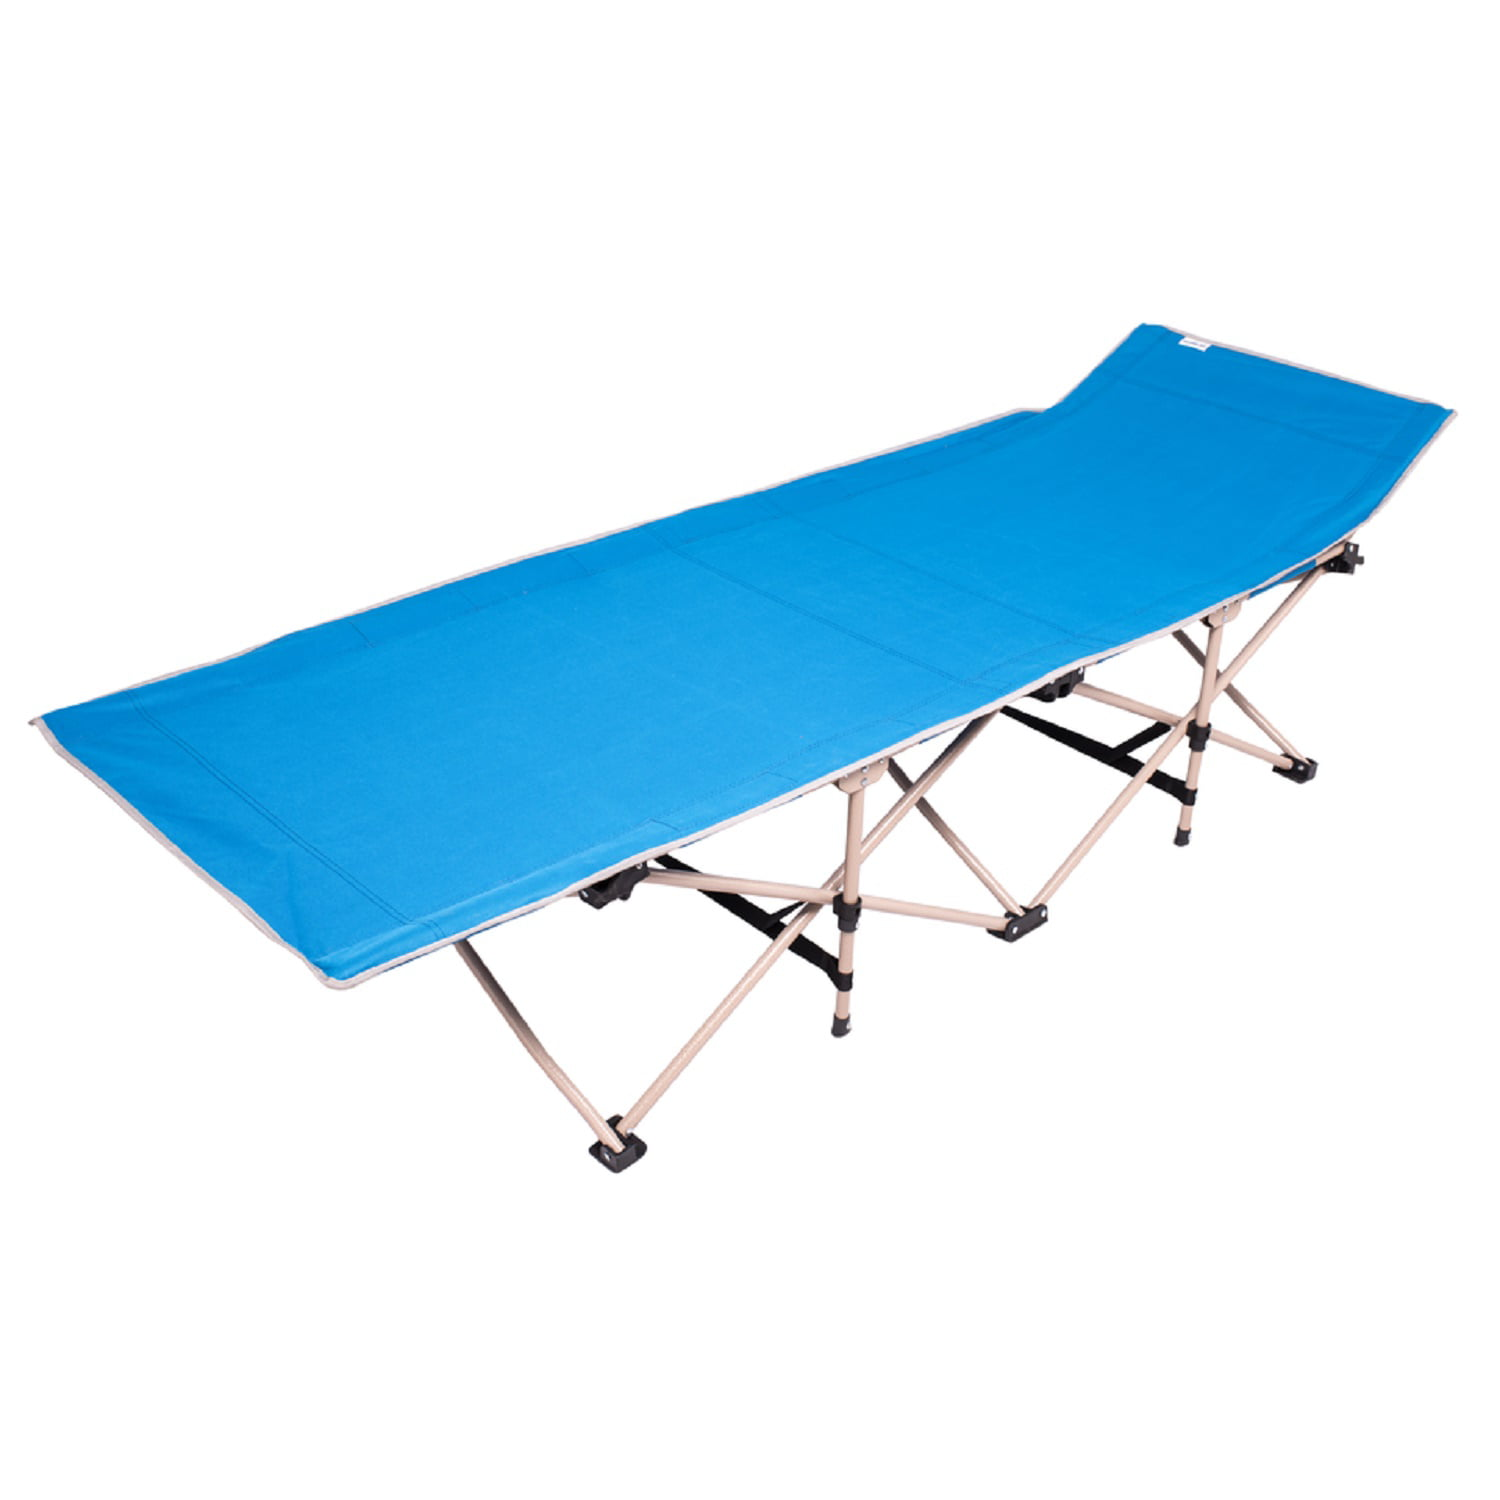 Osage River Folding Camp Cot with Carry Bag Blue by Osage River